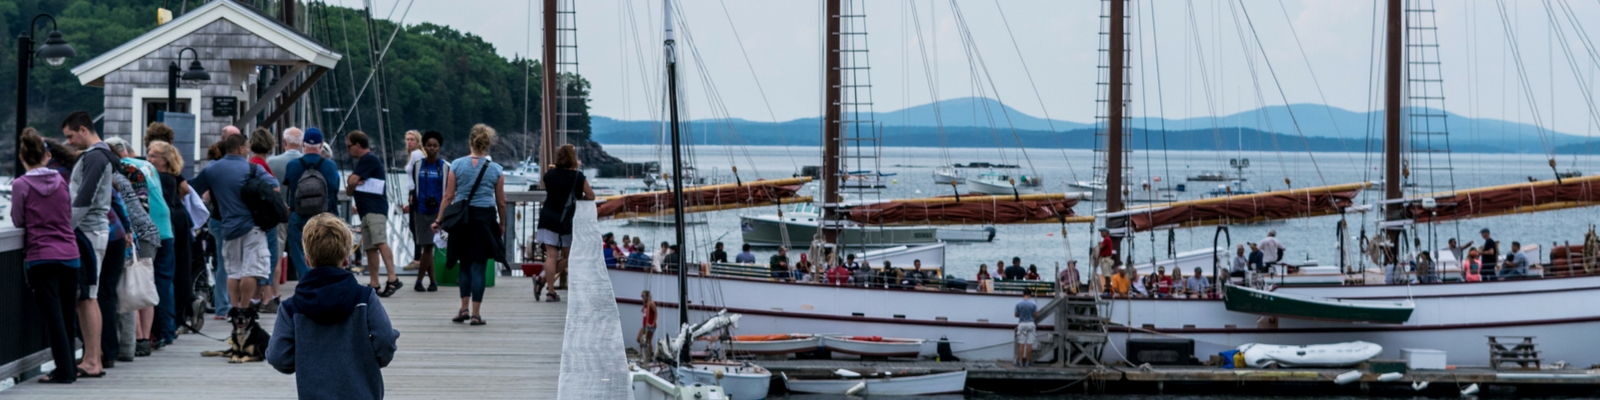 Things to do in Bar Harbor and Acadia National Park Maine